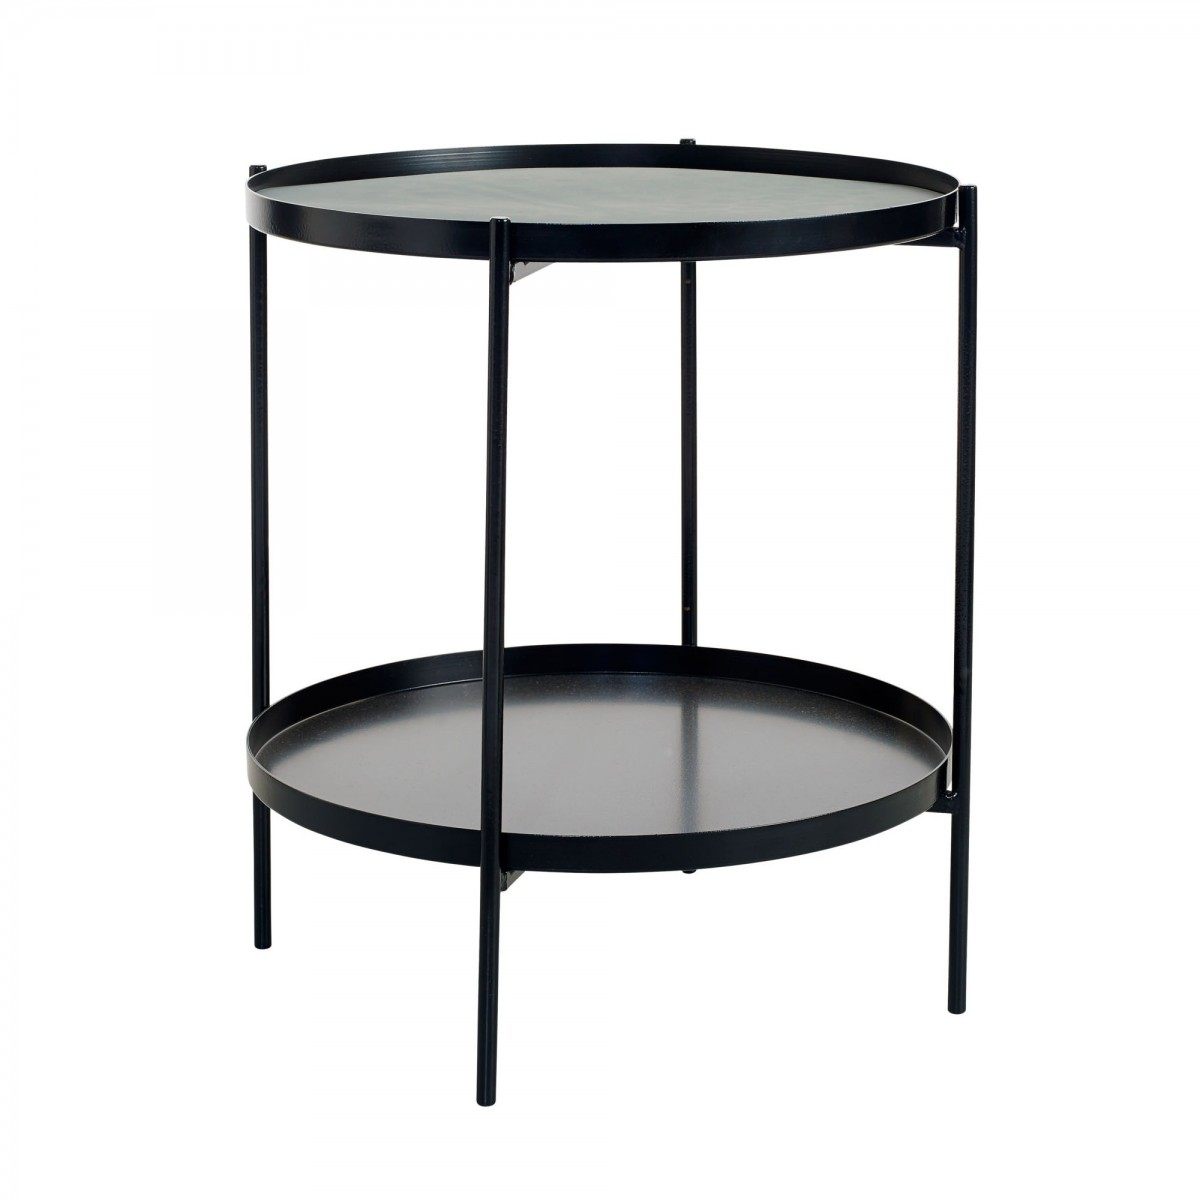 Table d 39 appoint tray s noir bolia - Table d appoint noire ...